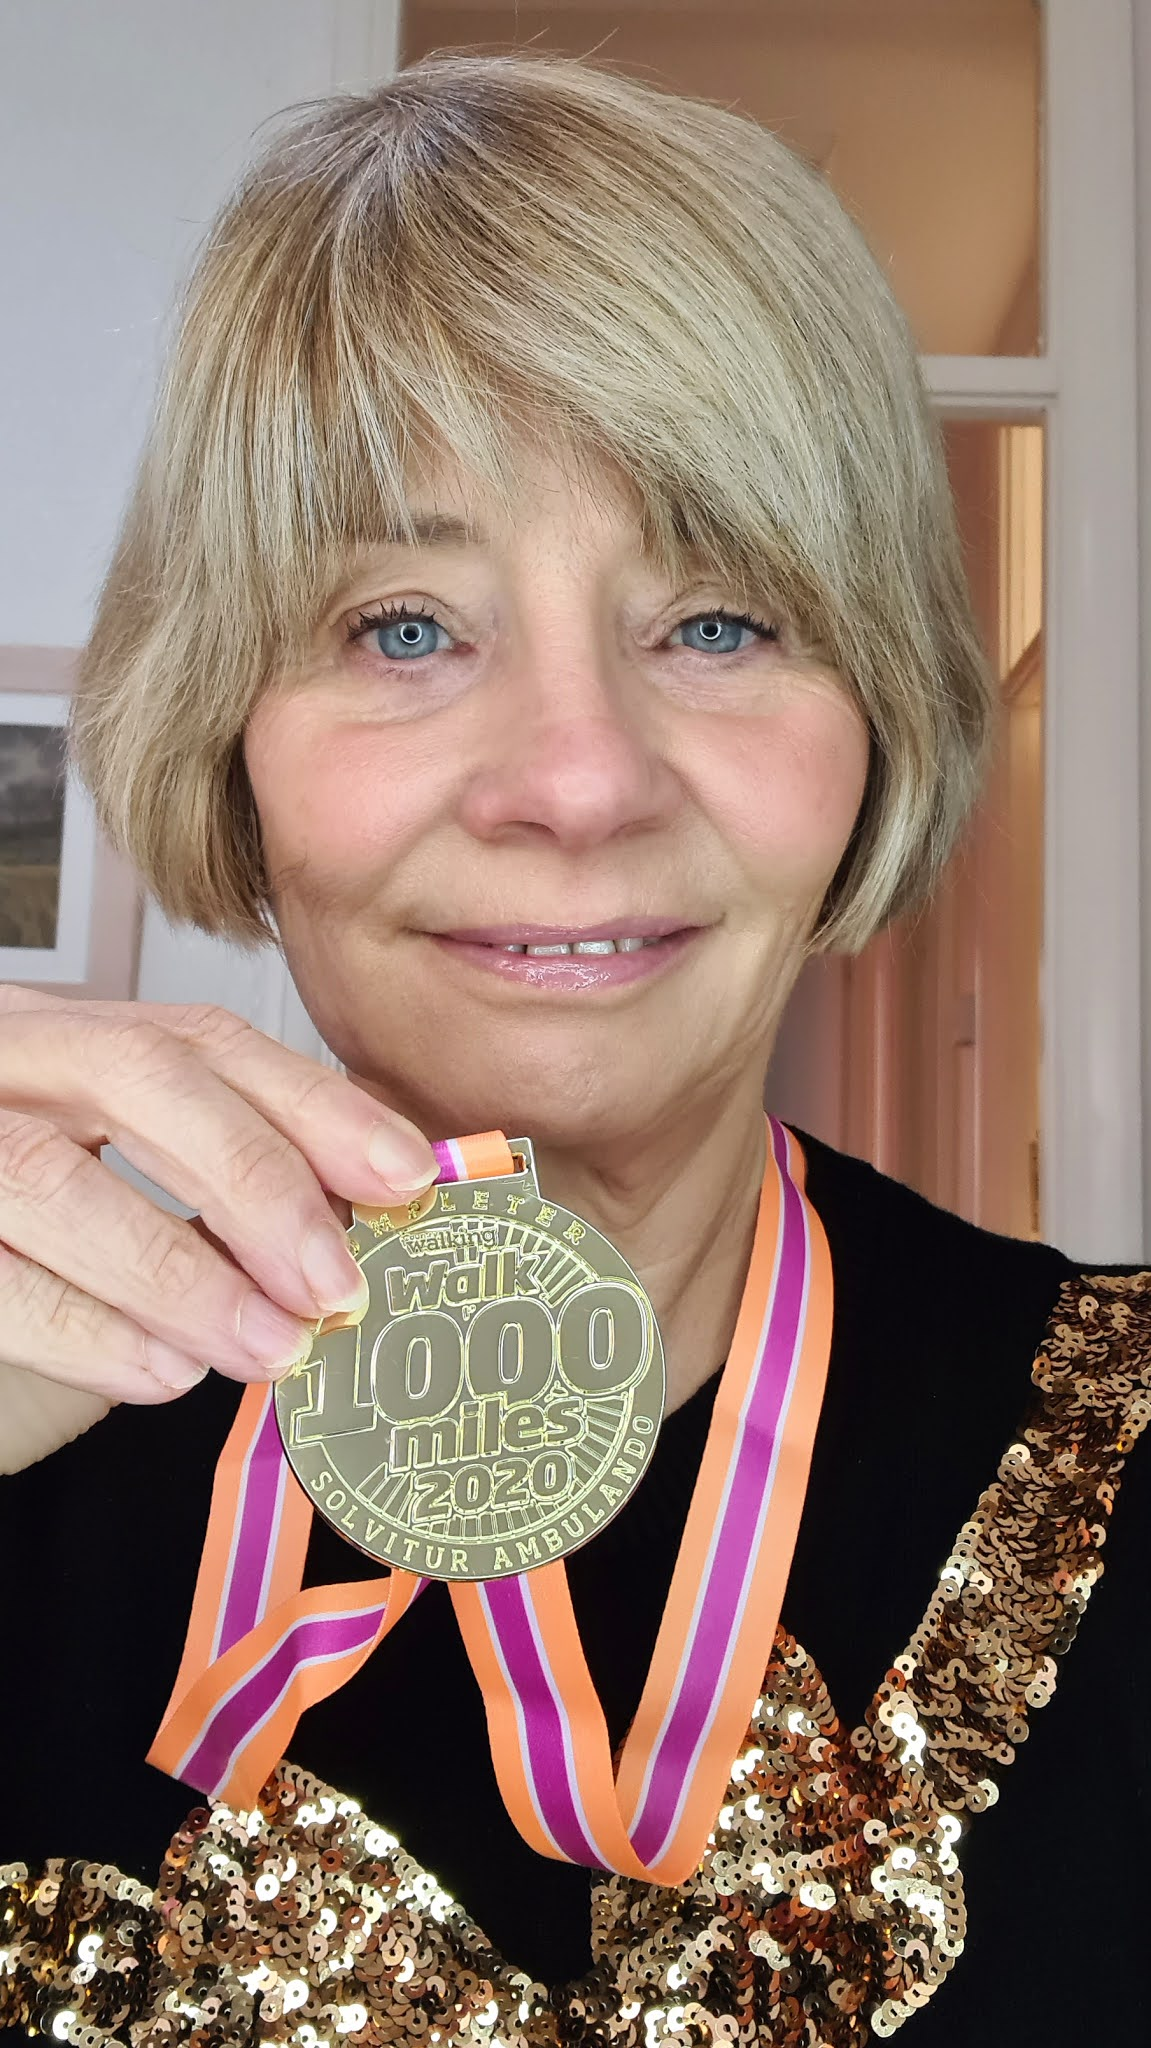 Gail Hanlon from style blog Is This Mutton with her completers' medal for the #Walk1000Miles Challenge 2020